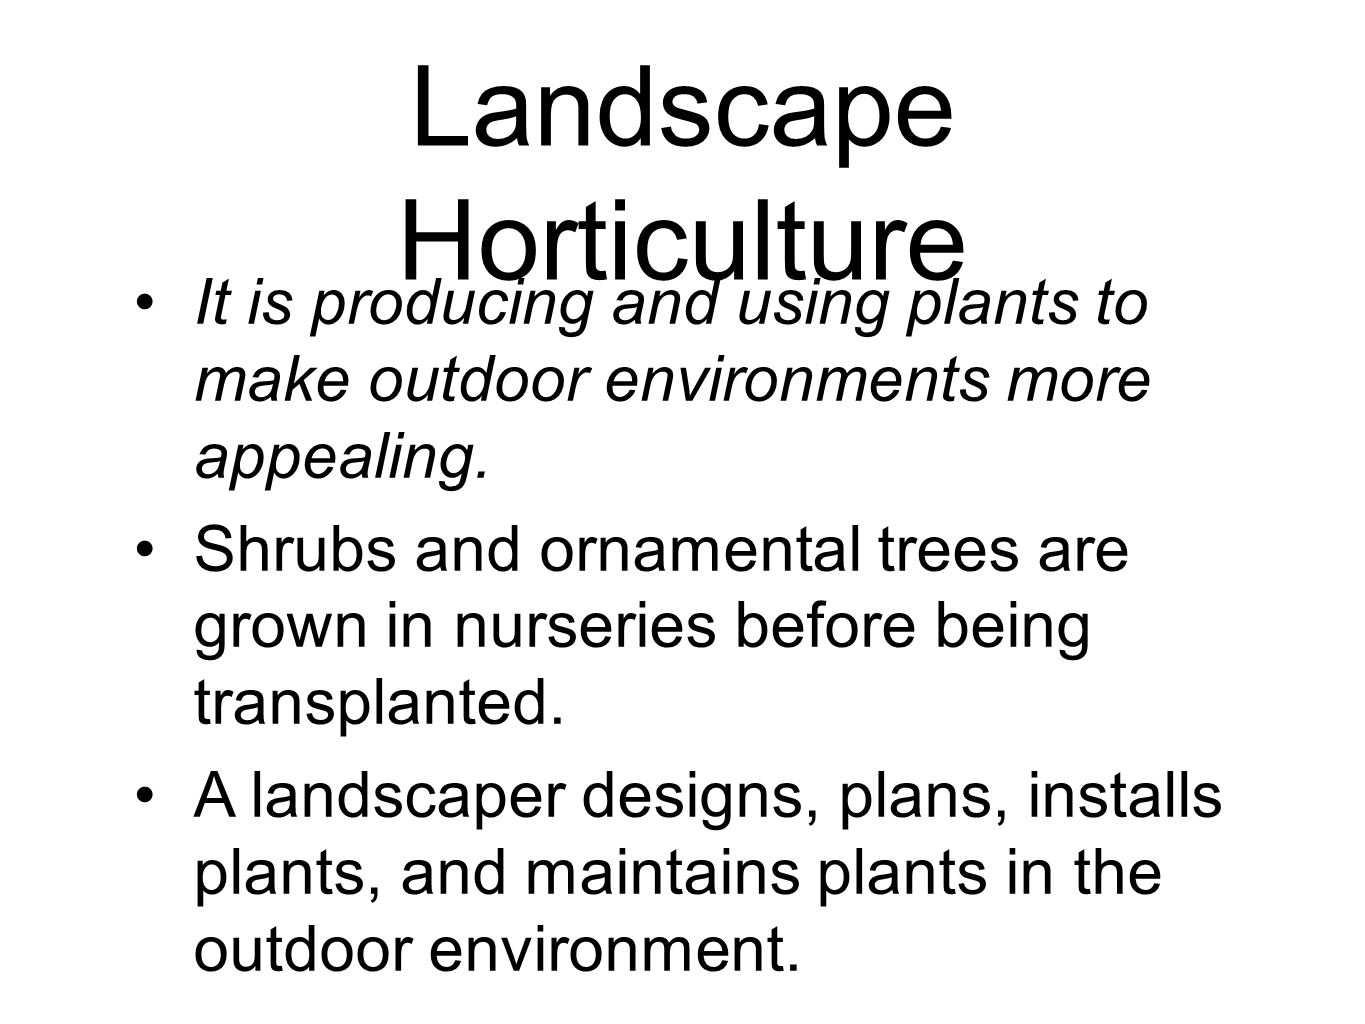 Landscape Horticulture It is producing and using plants to make outdoor environments more appealing. Shrubs and ornamental trees are grown in nurserie